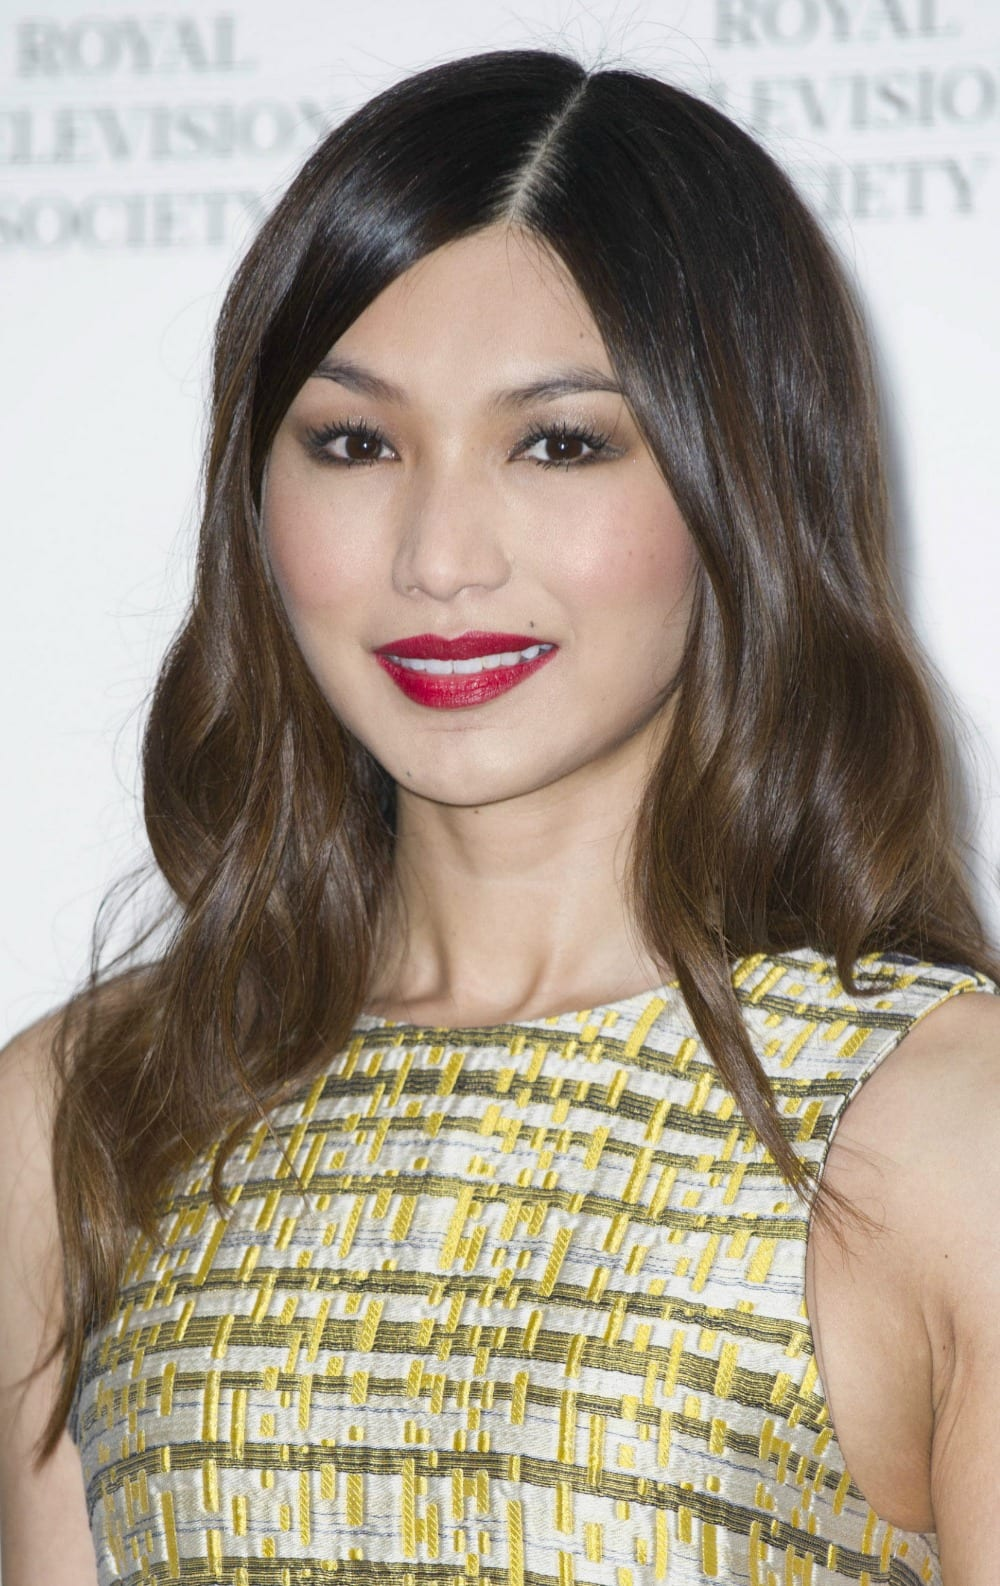 Best hair styles of the week - Gemma Chan has a slight ombre look to her hair. It starts off darker at the top and gradually gets a bit lighter towards the ends.